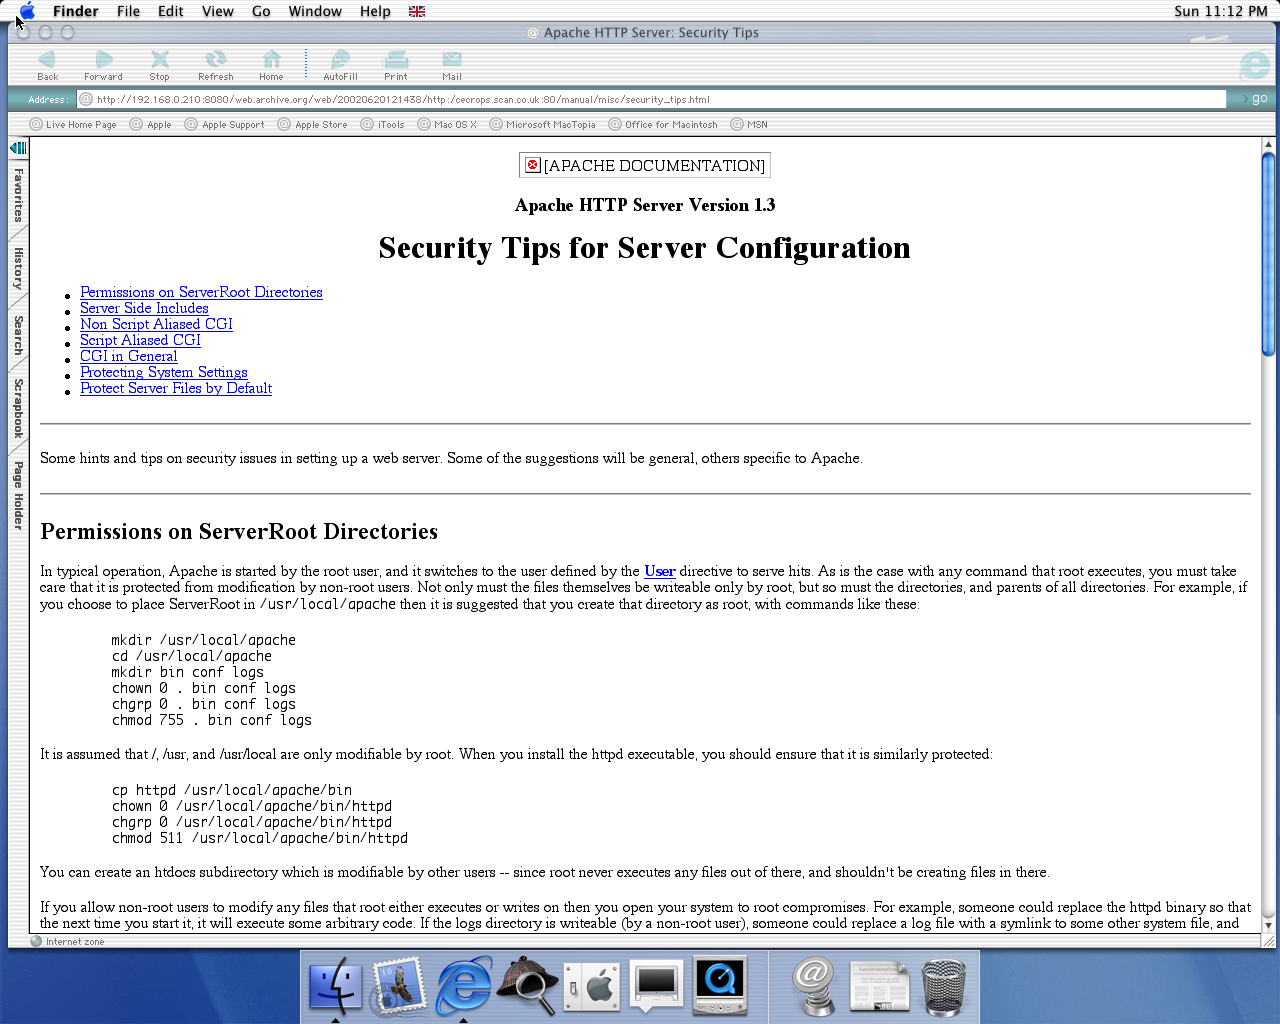 OS X 10.0 PPC with Microsoft Internet Explorer 5.1 for Mac Preview displaying a page from Scan Computers archived at June 20, 2002 at 12:14:38